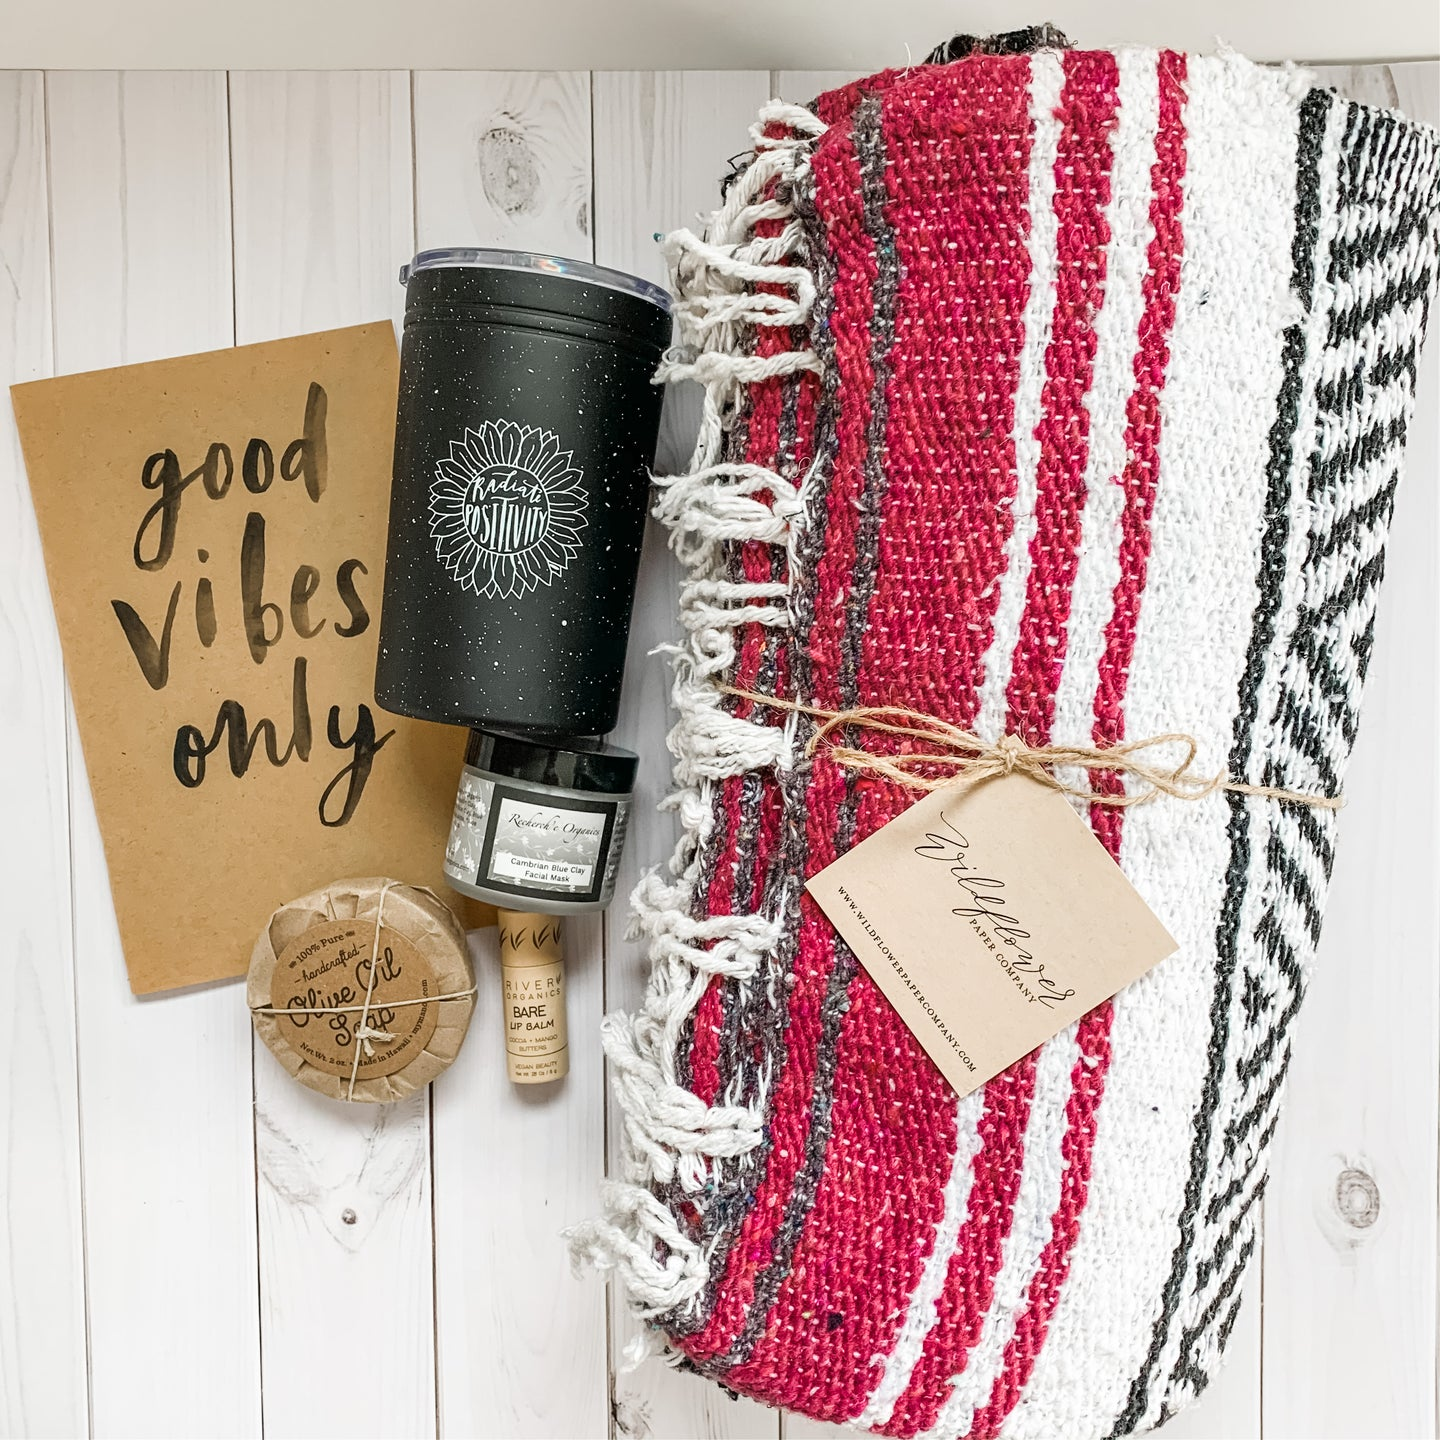 Holiday Gift Set - Good Holiday Vibes Only